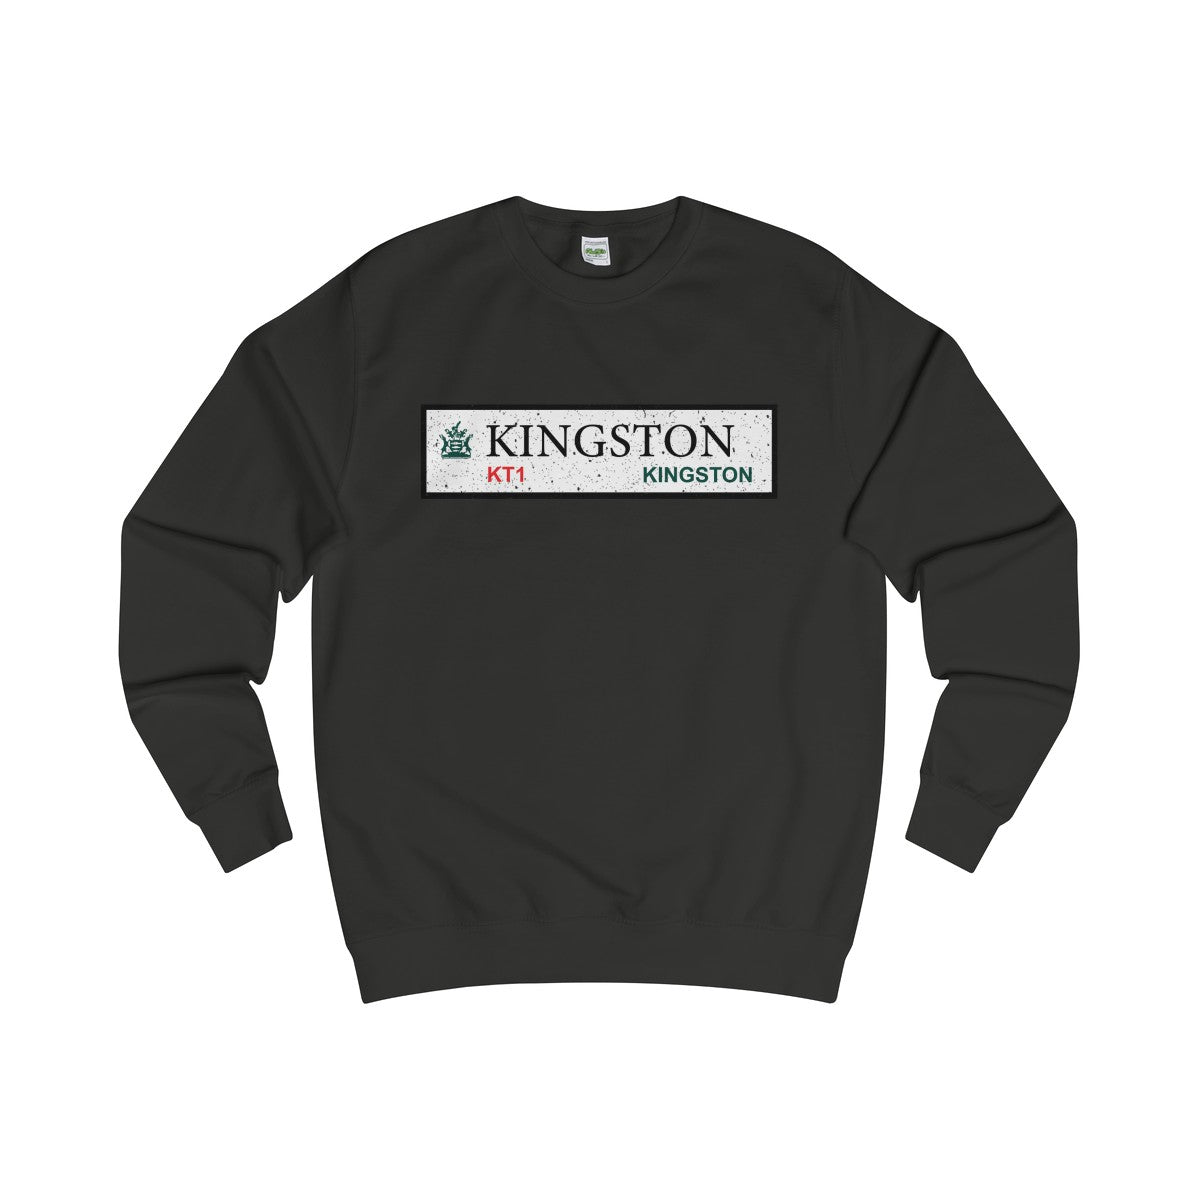 Kingston Road Sign KT1 Sweater